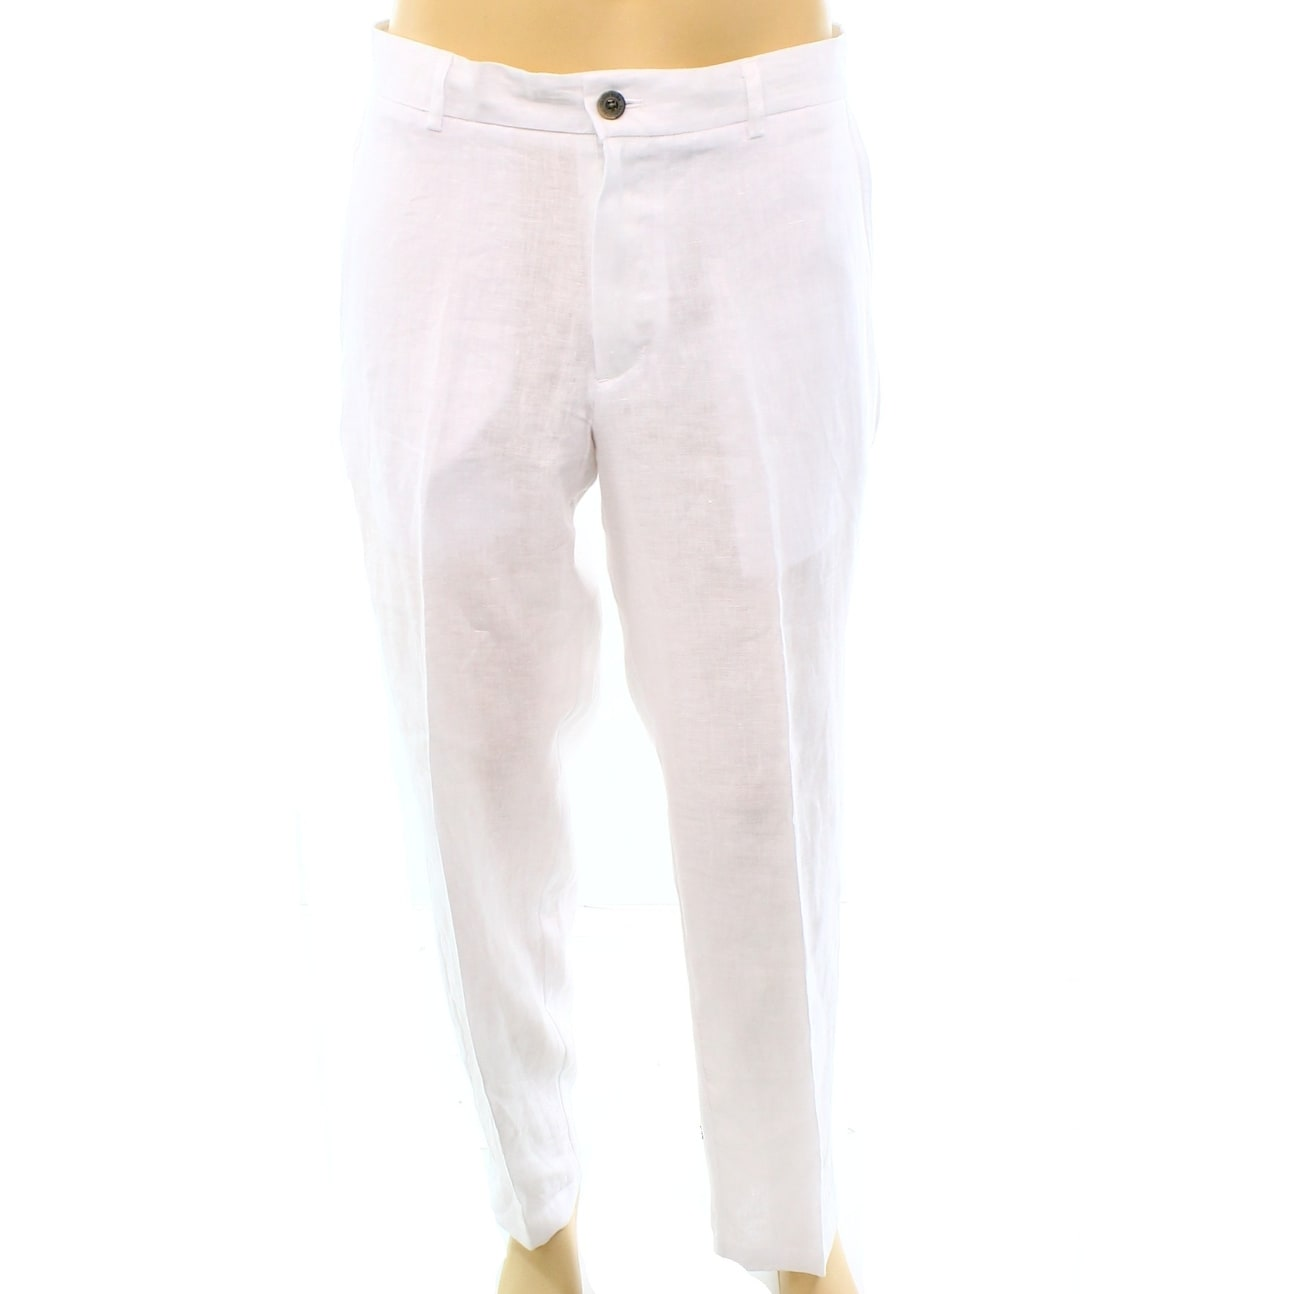 a0051a8a2 Mens White Linen Dress Slacks | Saddha